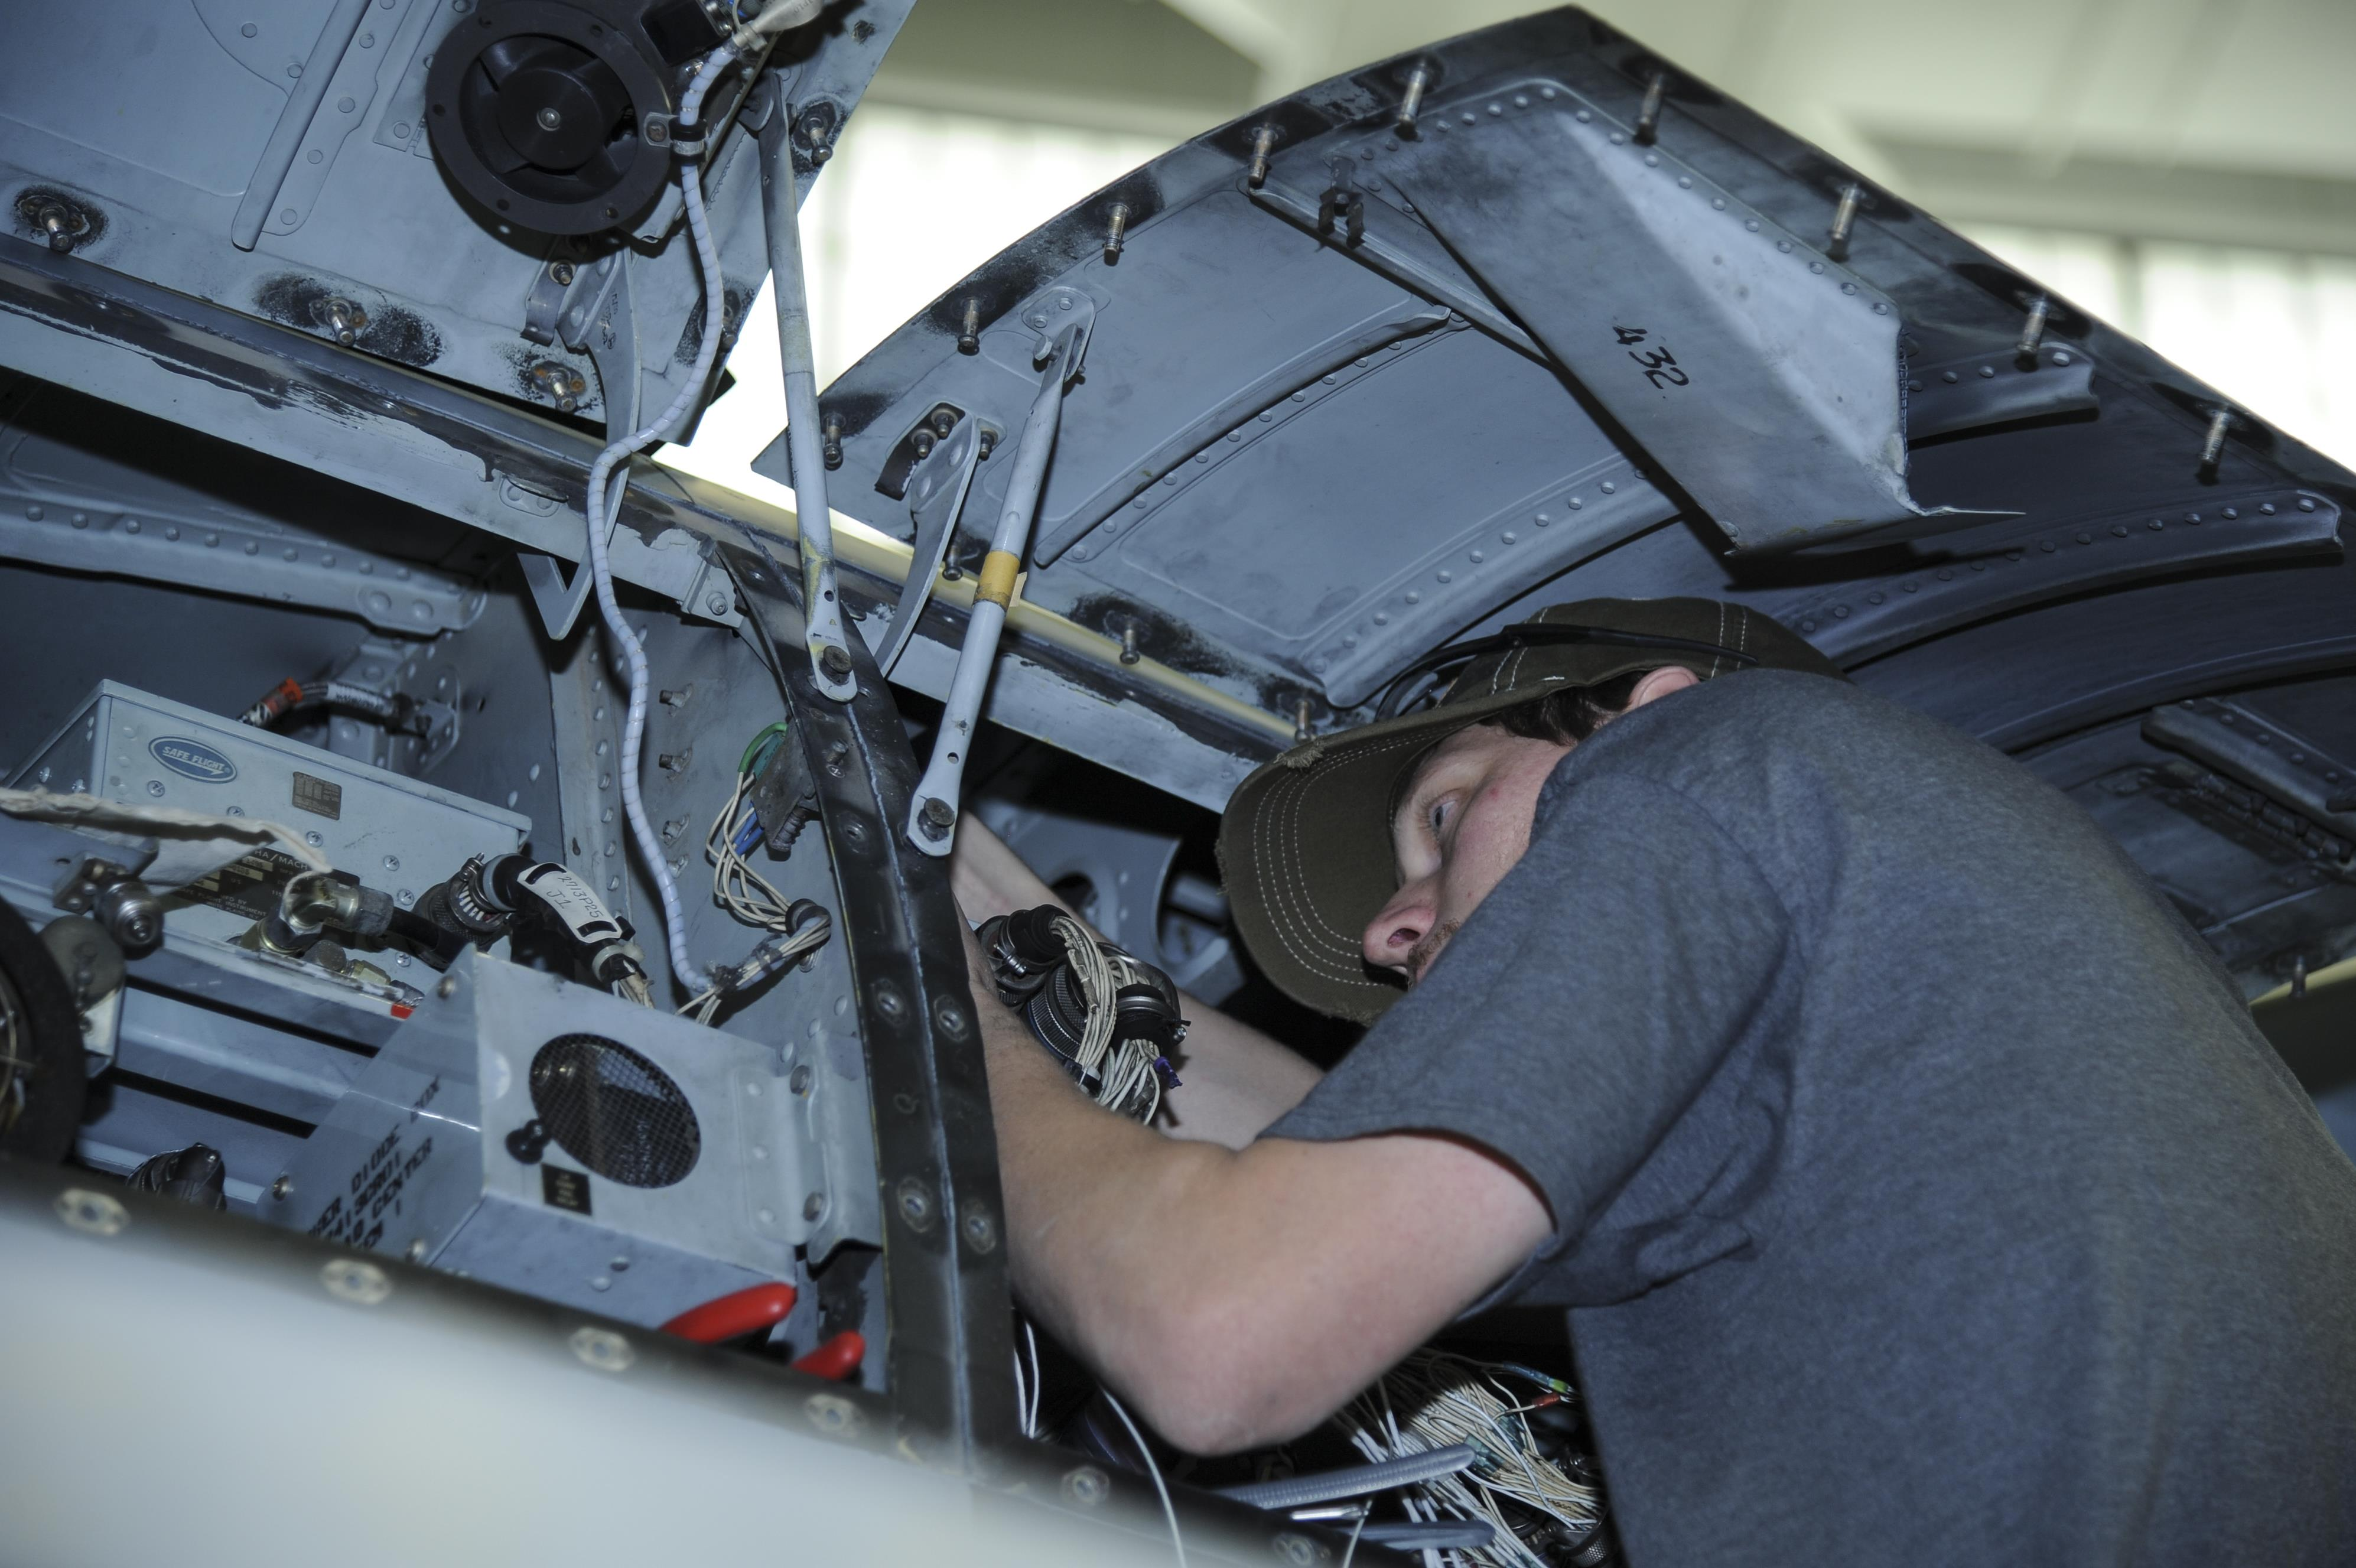 Photos Mb Wiring Harness Aaron Miller 309th Aircraft Maintenance And Regeneration Group Technician Installs A